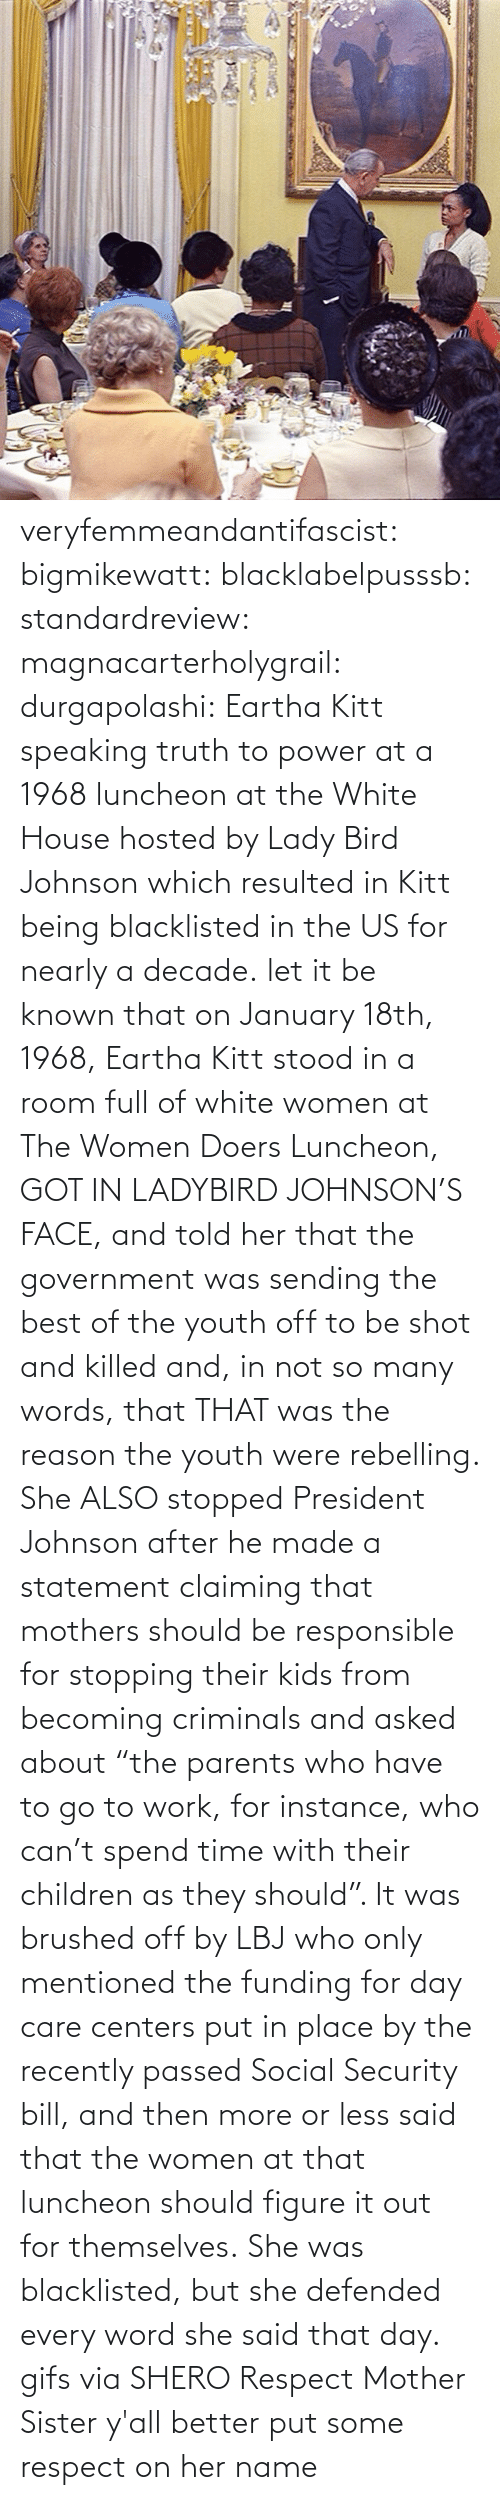 "Who Have: veryfemmeandantifascist: bigmikewatt:  blacklabelpusssb:  standardreview:  magnacarterholygrail:  durgapolashi:  Eartha Kitt speaking truth to power at a 1968 luncheon at the White House hosted by Lady Bird Johnson which resulted in Kitt being blacklisted in the US for nearly a decade.  let it be known that on January 18th, 1968, Eartha Kitt stood in a room full of white women at The Women Doers Luncheon, GOT IN LADYBIRD JOHNSON'S FACE, and told her that the government was sending the best of the youth off to be shot and killed and, in not so many words, that THAT was the reason the youth were rebelling. She ALSO stopped President Johnson after he made a statement claiming that mothers should be responsible for stopping their kids from becoming criminals and asked about ""the parents who have to go to work, for instance, who can't spend time with their children as they should"". It was brushed off by LBJ who only mentioned the funding for day care centers put in place by the recently passed Social Security bill, and then more or less said that the women at that luncheon should figure it out for themselves. She was blacklisted, but she defended every word she said that day.    gifs via  SHERO   Respect Mother Sister  y'all better put some respect on her name"